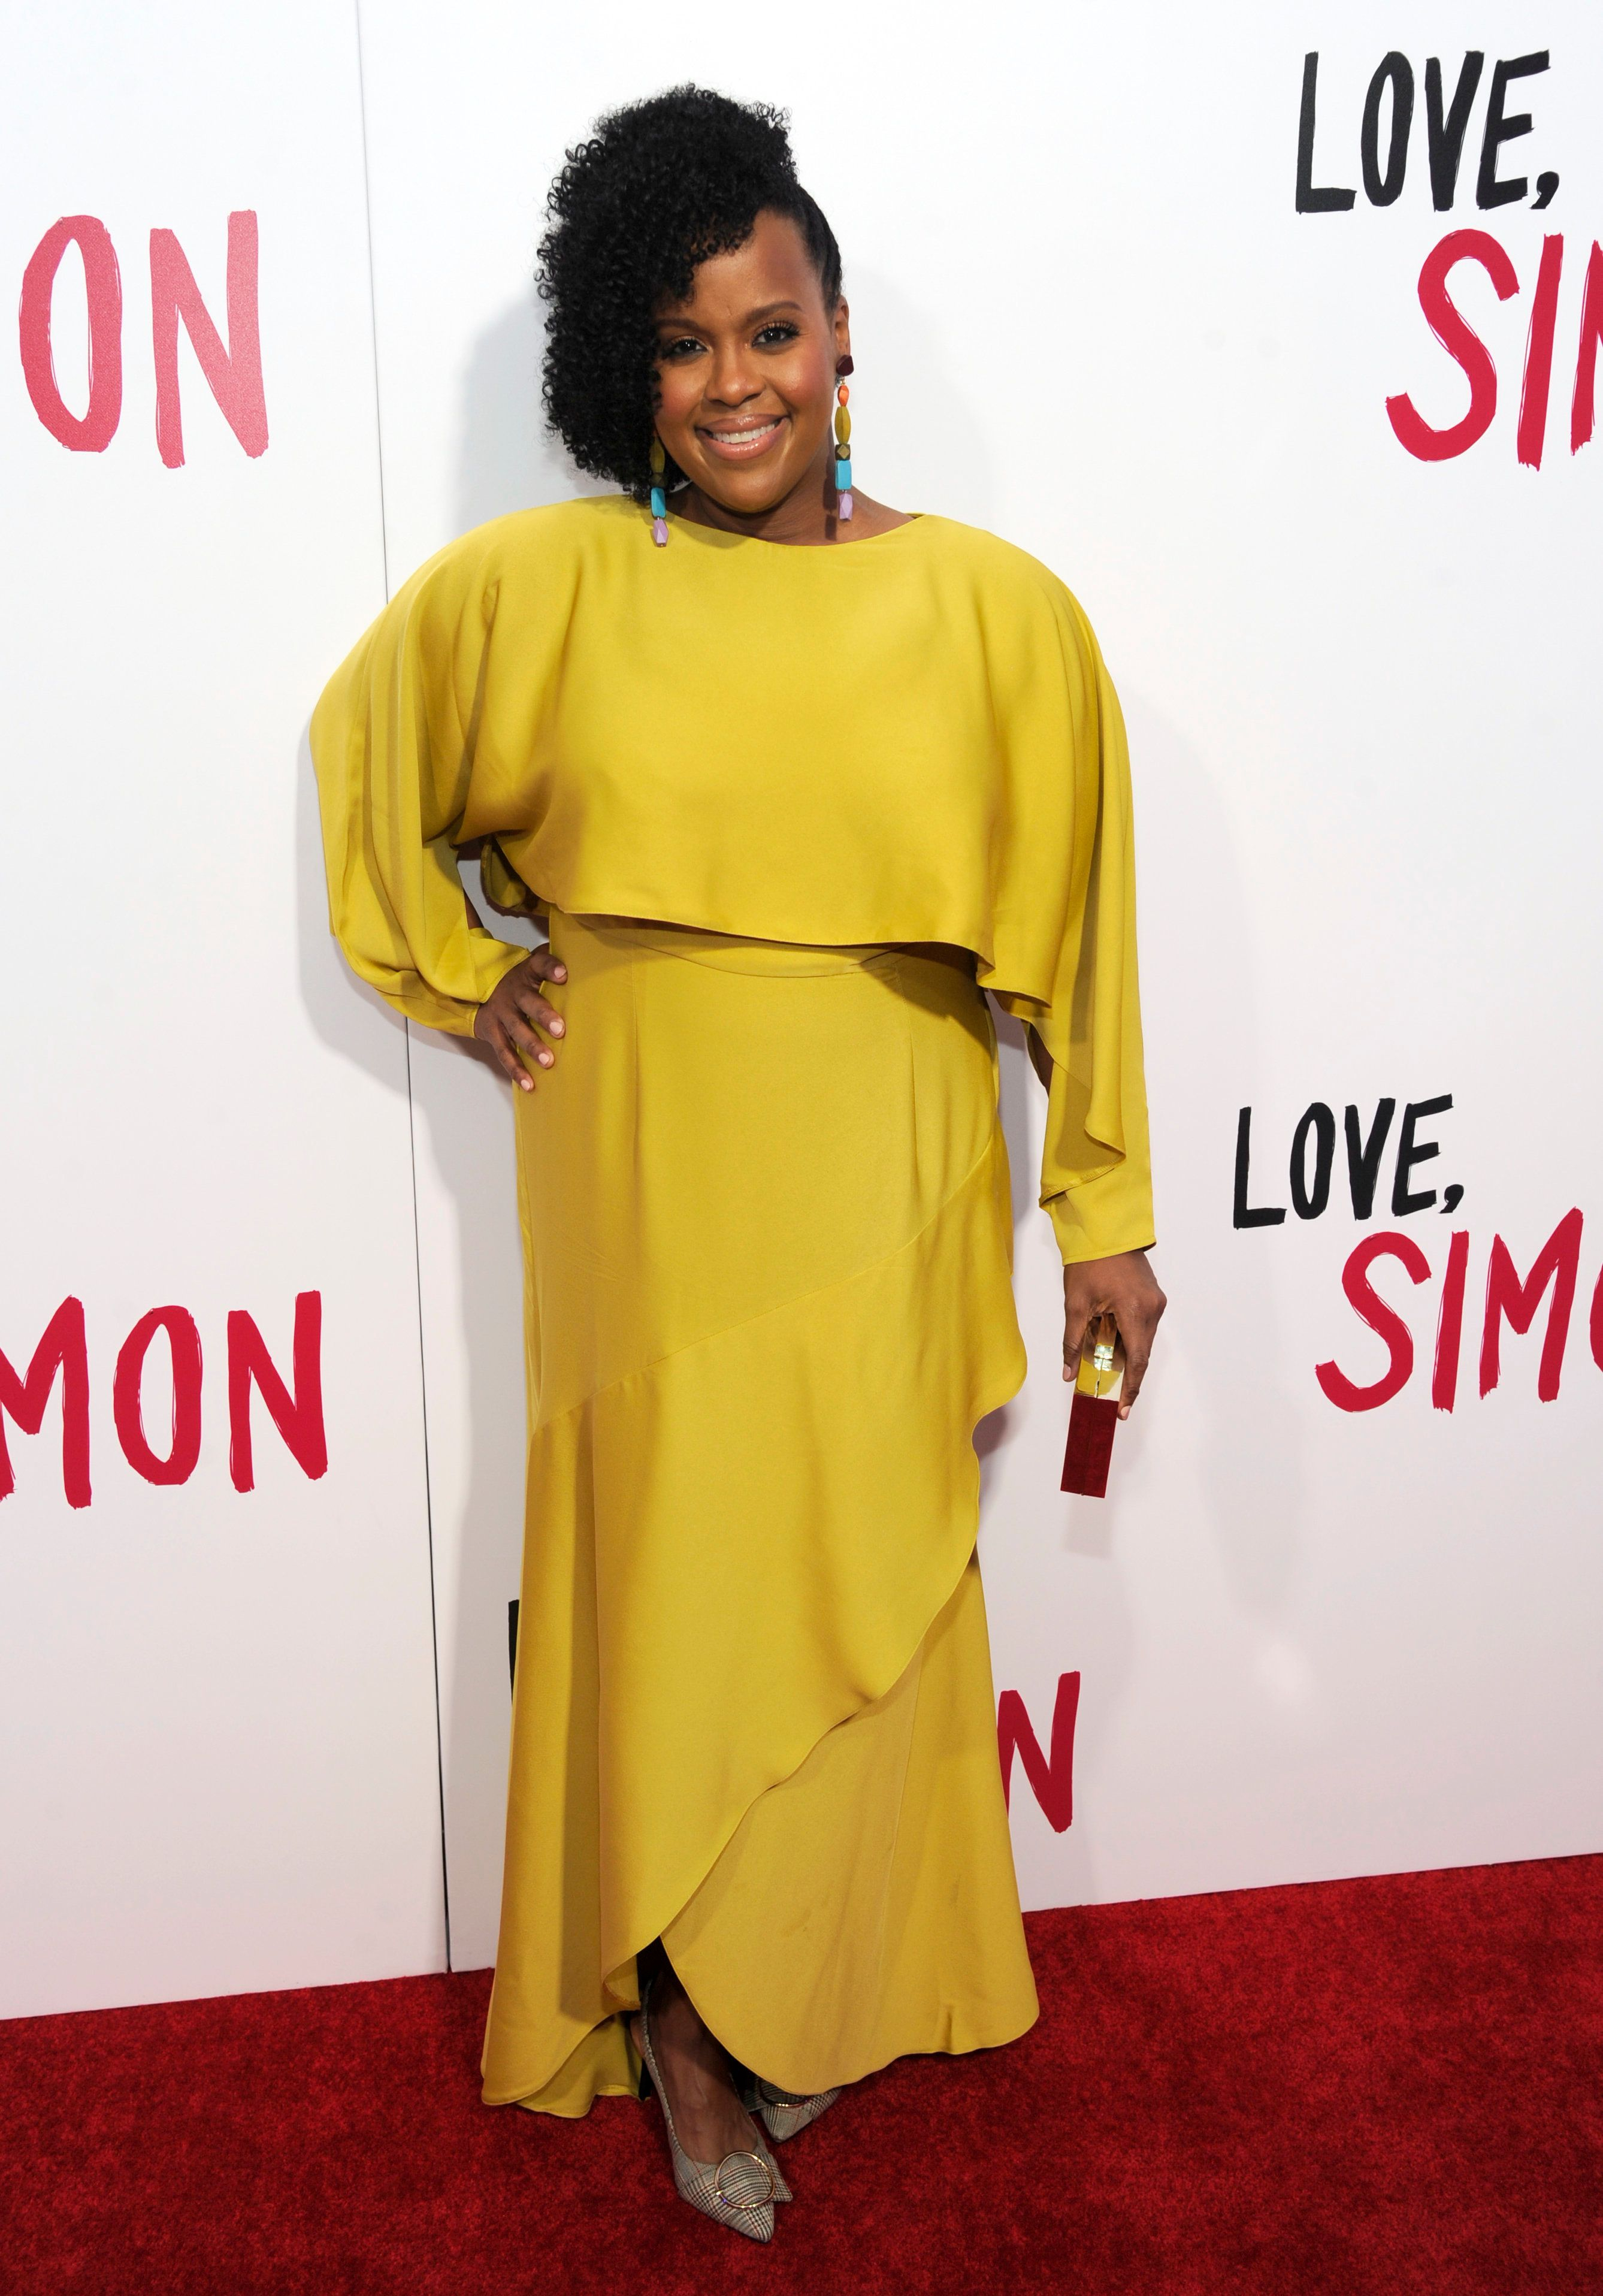 """Natasha Rothwell arrives at a special screening of """"Love, Simon"""" at Westfield Century City on Tuesday, March 13, 2018, in Los Angeles. (Photo by Chris Pizzello/Invision/AP)"""